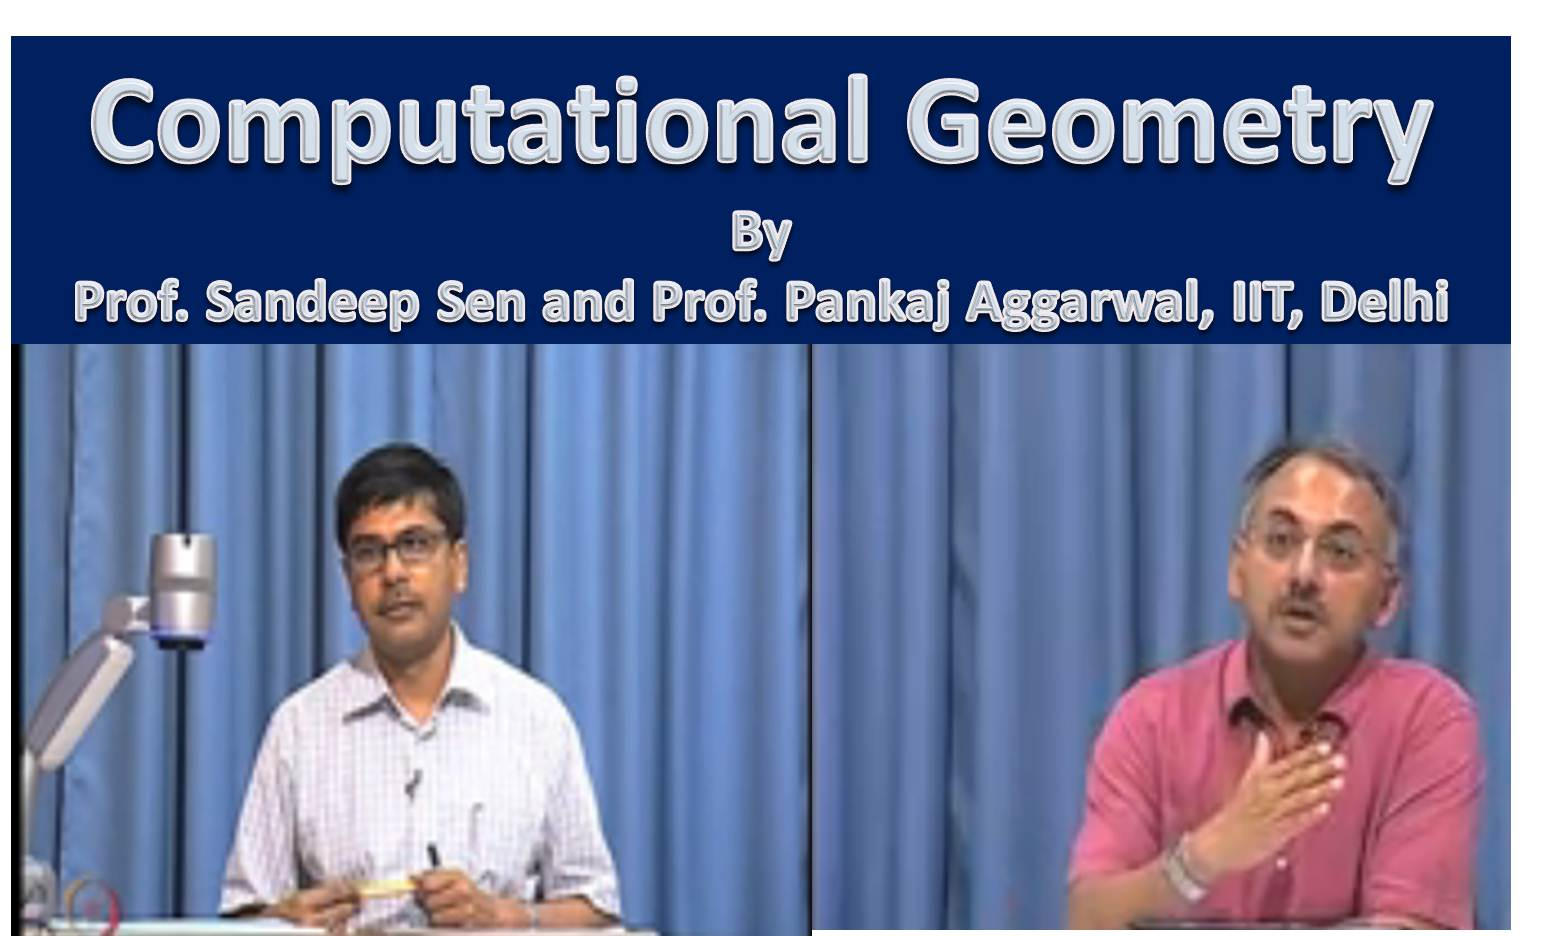 http://study.aisectonline.com/images/SubCategory/Computational Geometry by Prof. Sandeep Sen and Prof. Pankaj Aggarwal, IIT Delhi..jpg